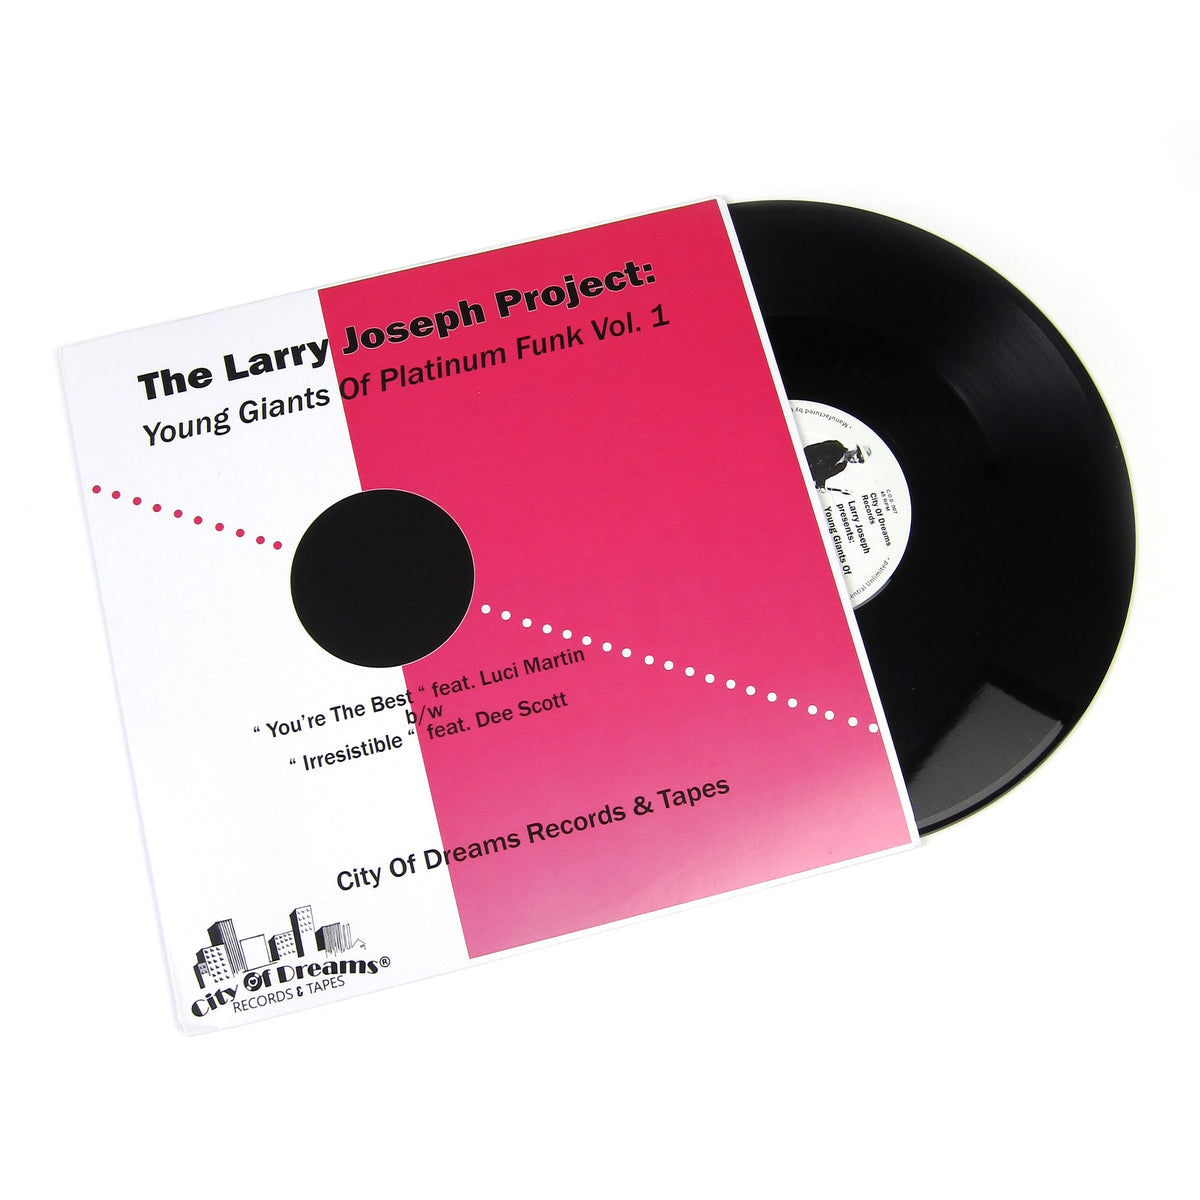 The Larry Joseph Project: Young Giants Of Platinum Funk Vol.1 Vinyl 12""